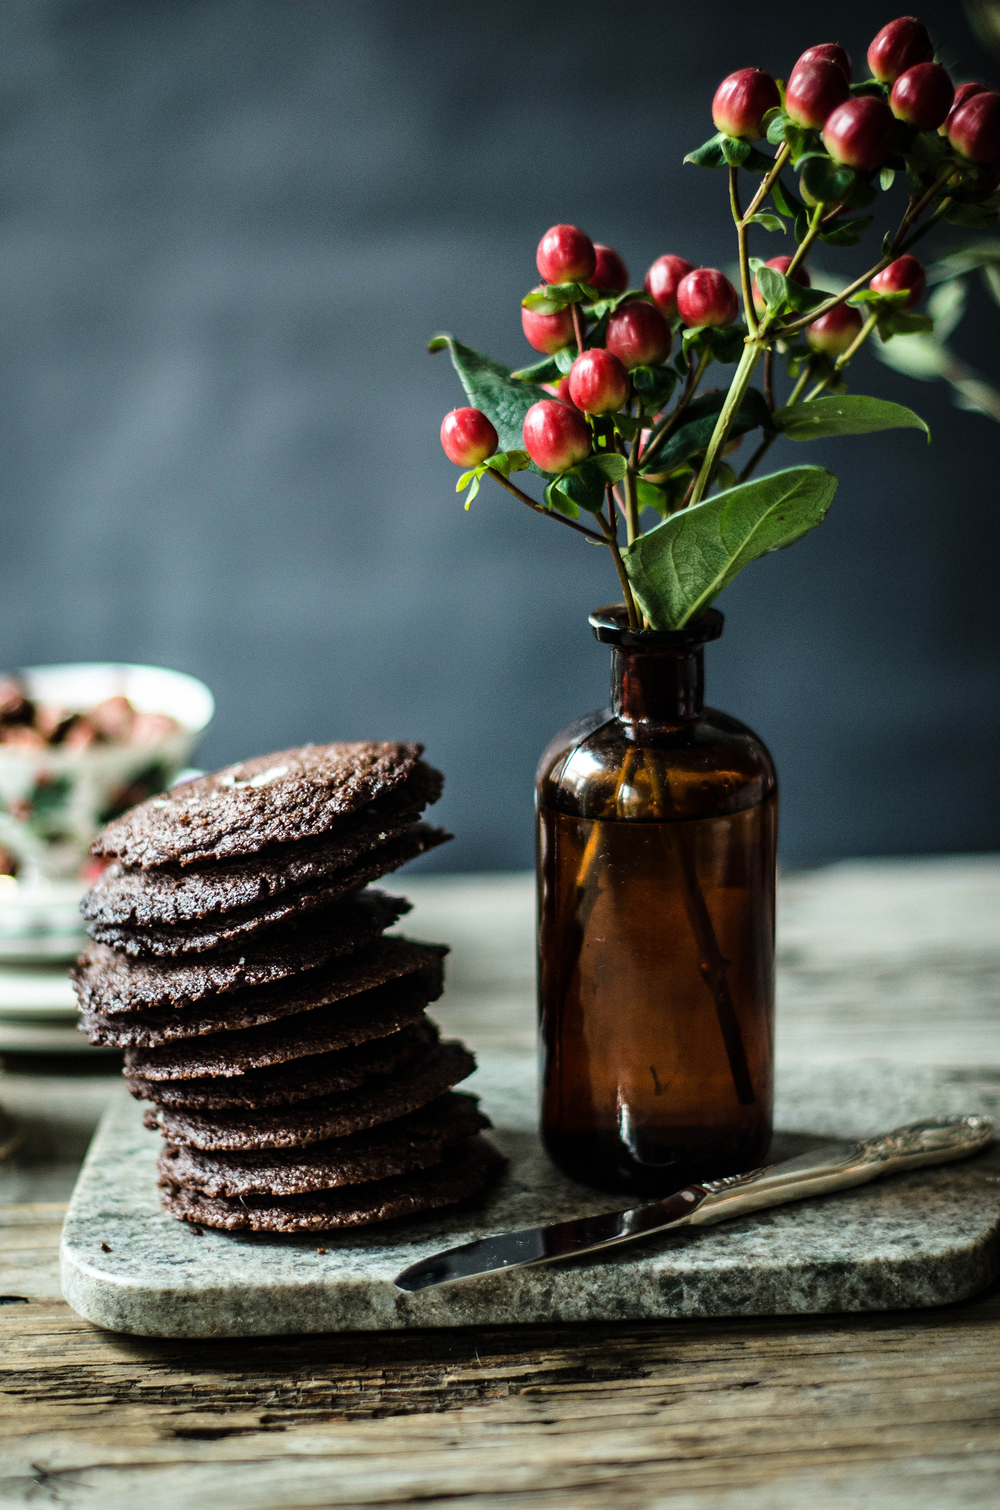 ROSE & IVY JOURNAL DARK CHOCOLATE SANDWICH COOKIES WITH CHOCOLATE HAZELNUT SPREAD